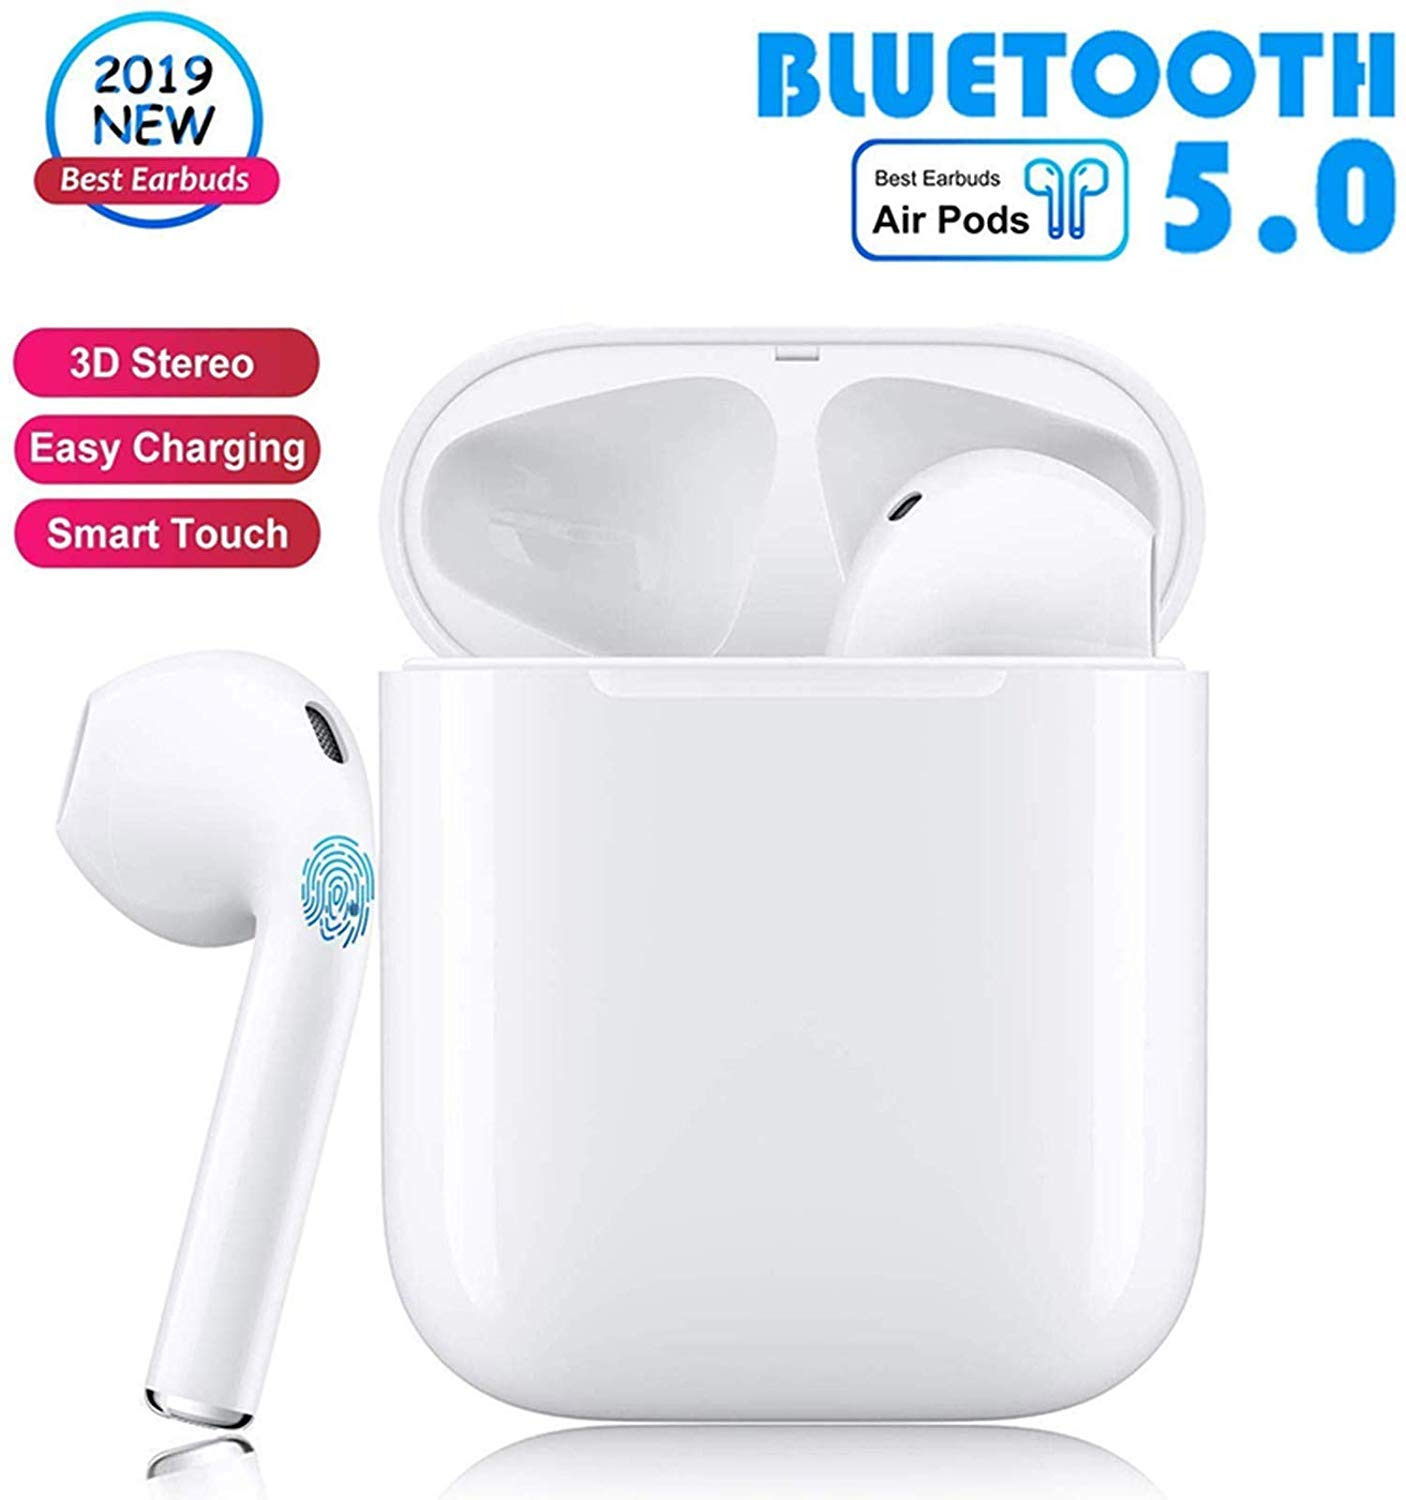 Bluetooth 5.0 Wireless Earbuds with 24Hrs Charging Case Waterproof TWS Stereo Headphones in-Ear Built-in Mic Headset Premium Sound with Deep Bass for Sport Earphones Apple Airpods Bluetooth Headsets